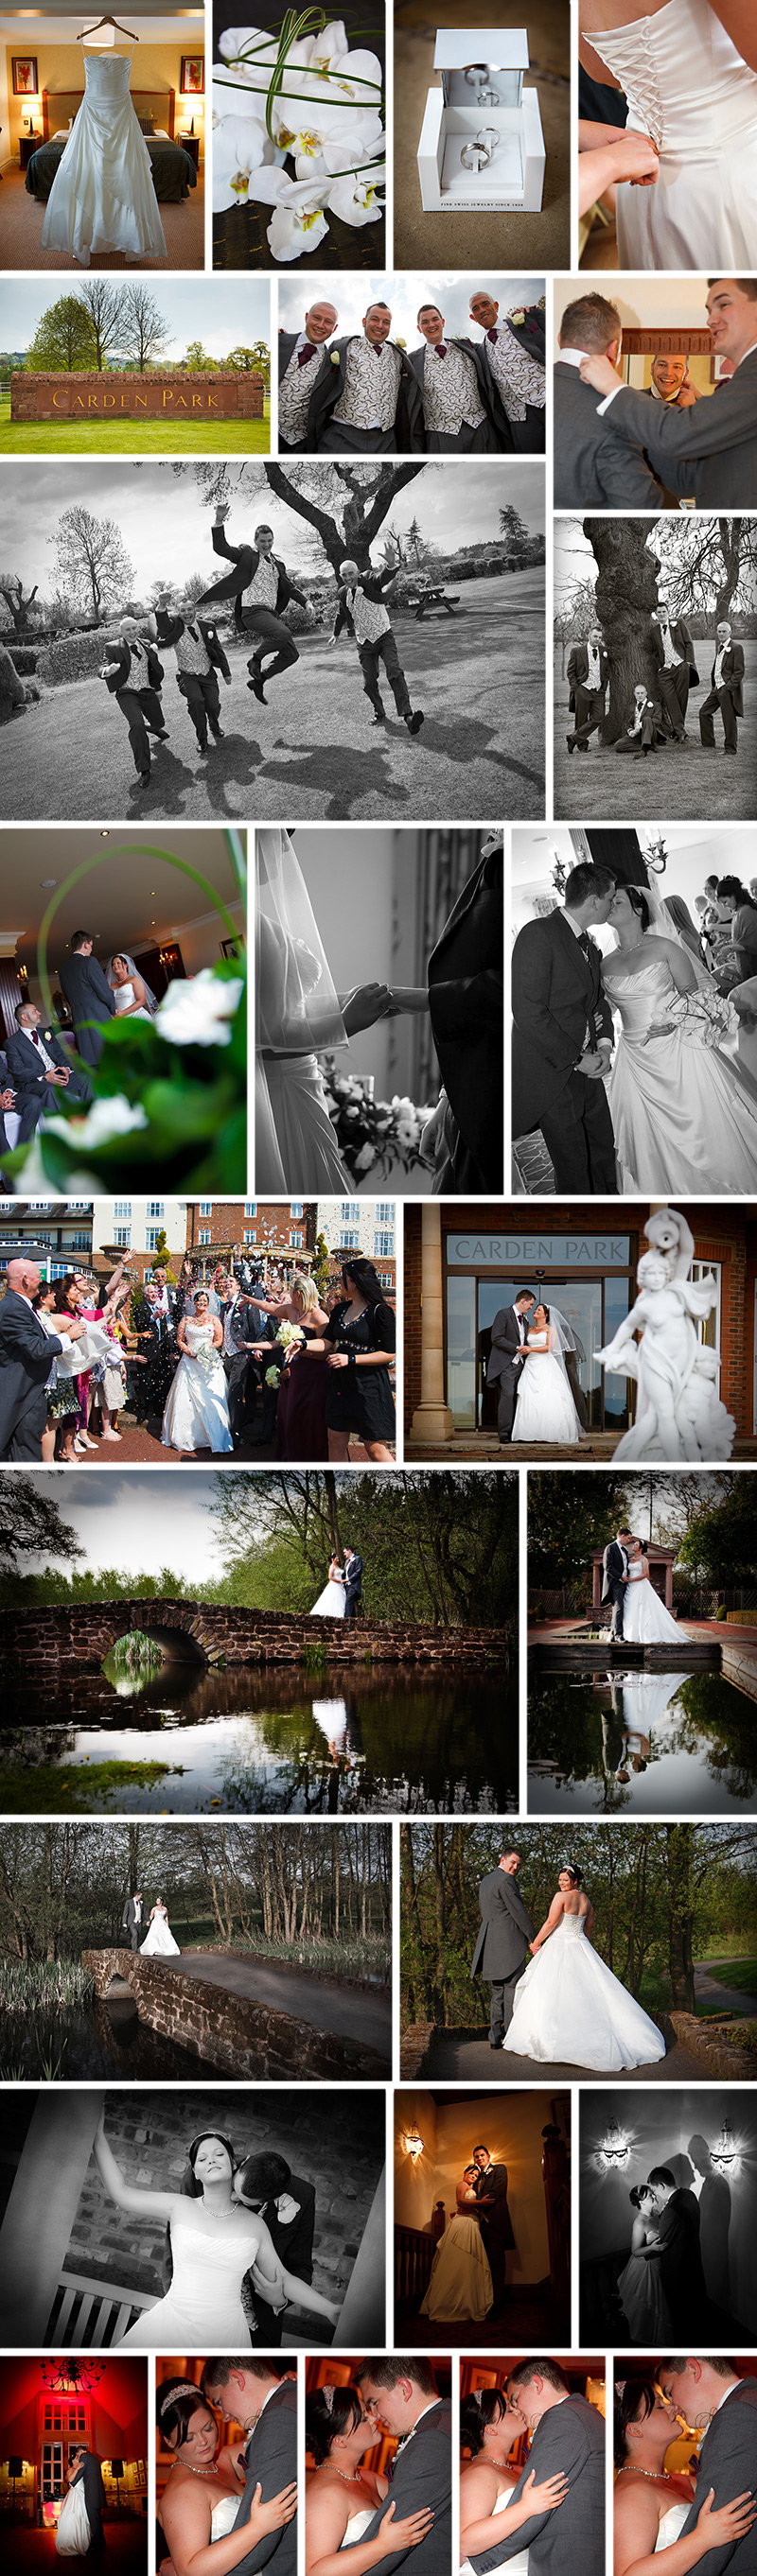 The Wedding of Chris & Rachel at Carden Park, Chester